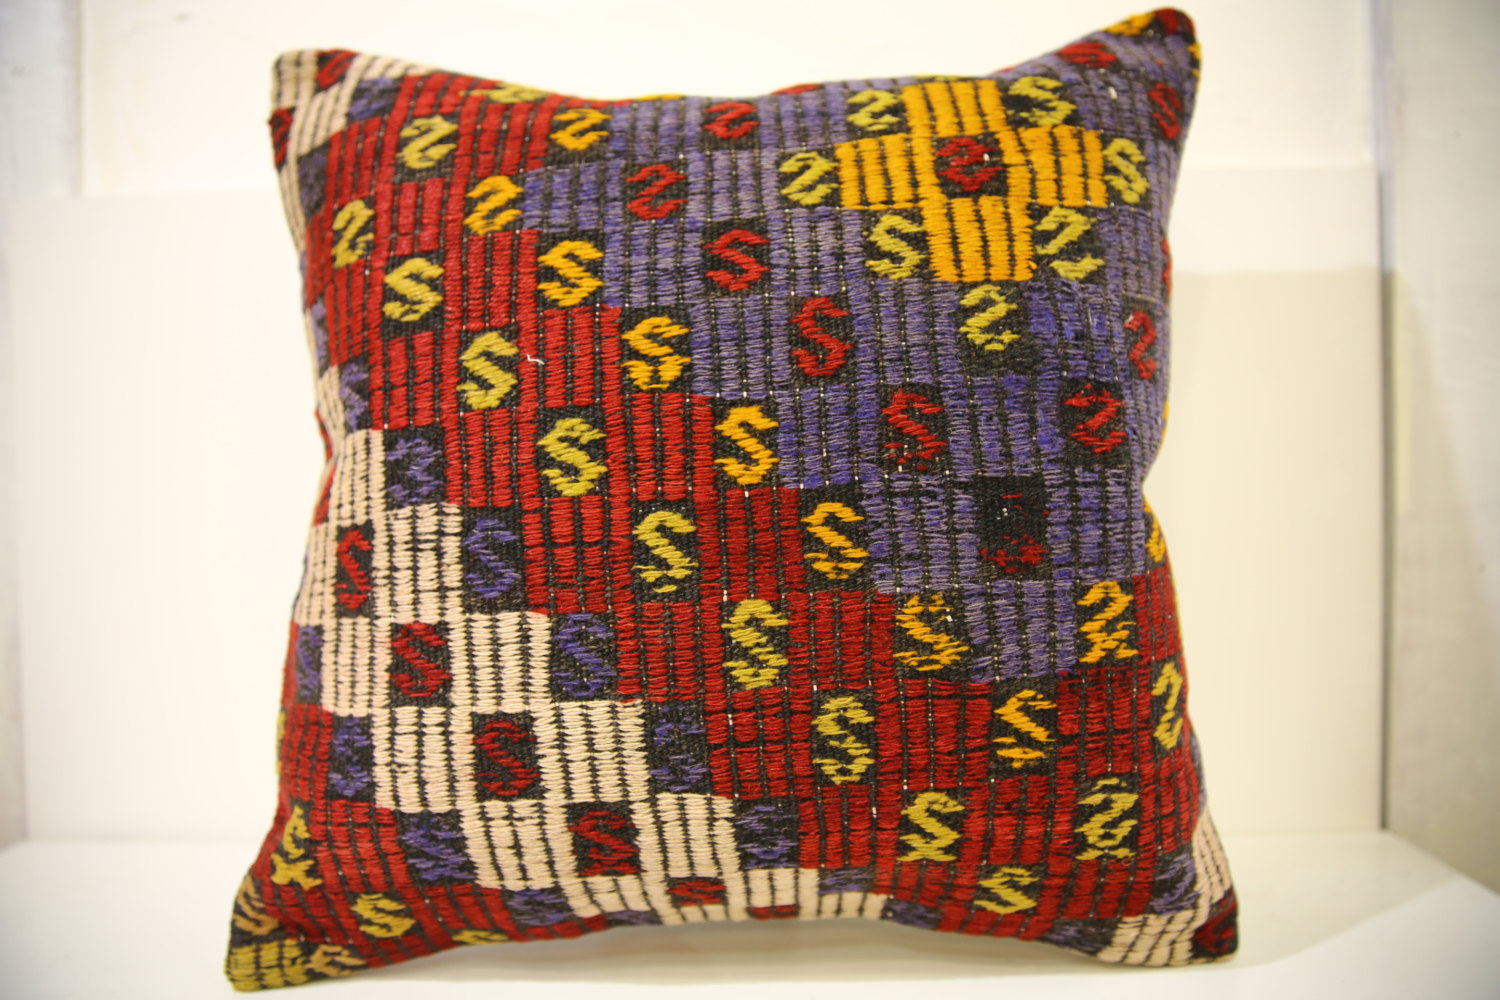 Kilim Pillows | 20x20 | Decorative Pillows | 1507 | Accent Pillows, Kilim rug